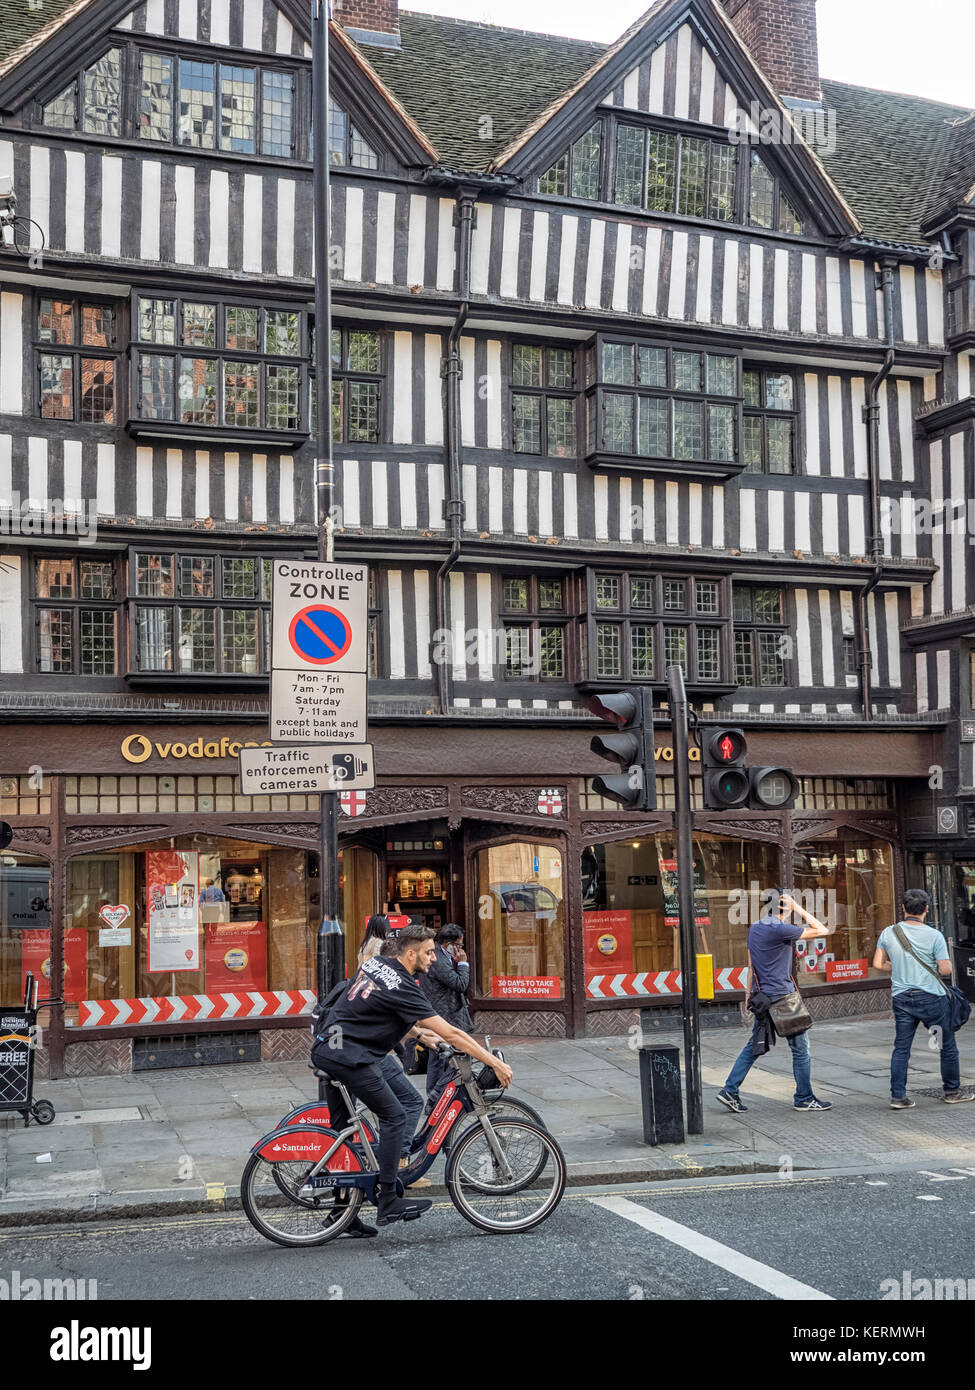 STAPLE INN BUILDING, HIGH HOLBORN, LONDON:  Tudor Grade 1 Listed Building which is home of the and is the last surviving Stock Photo